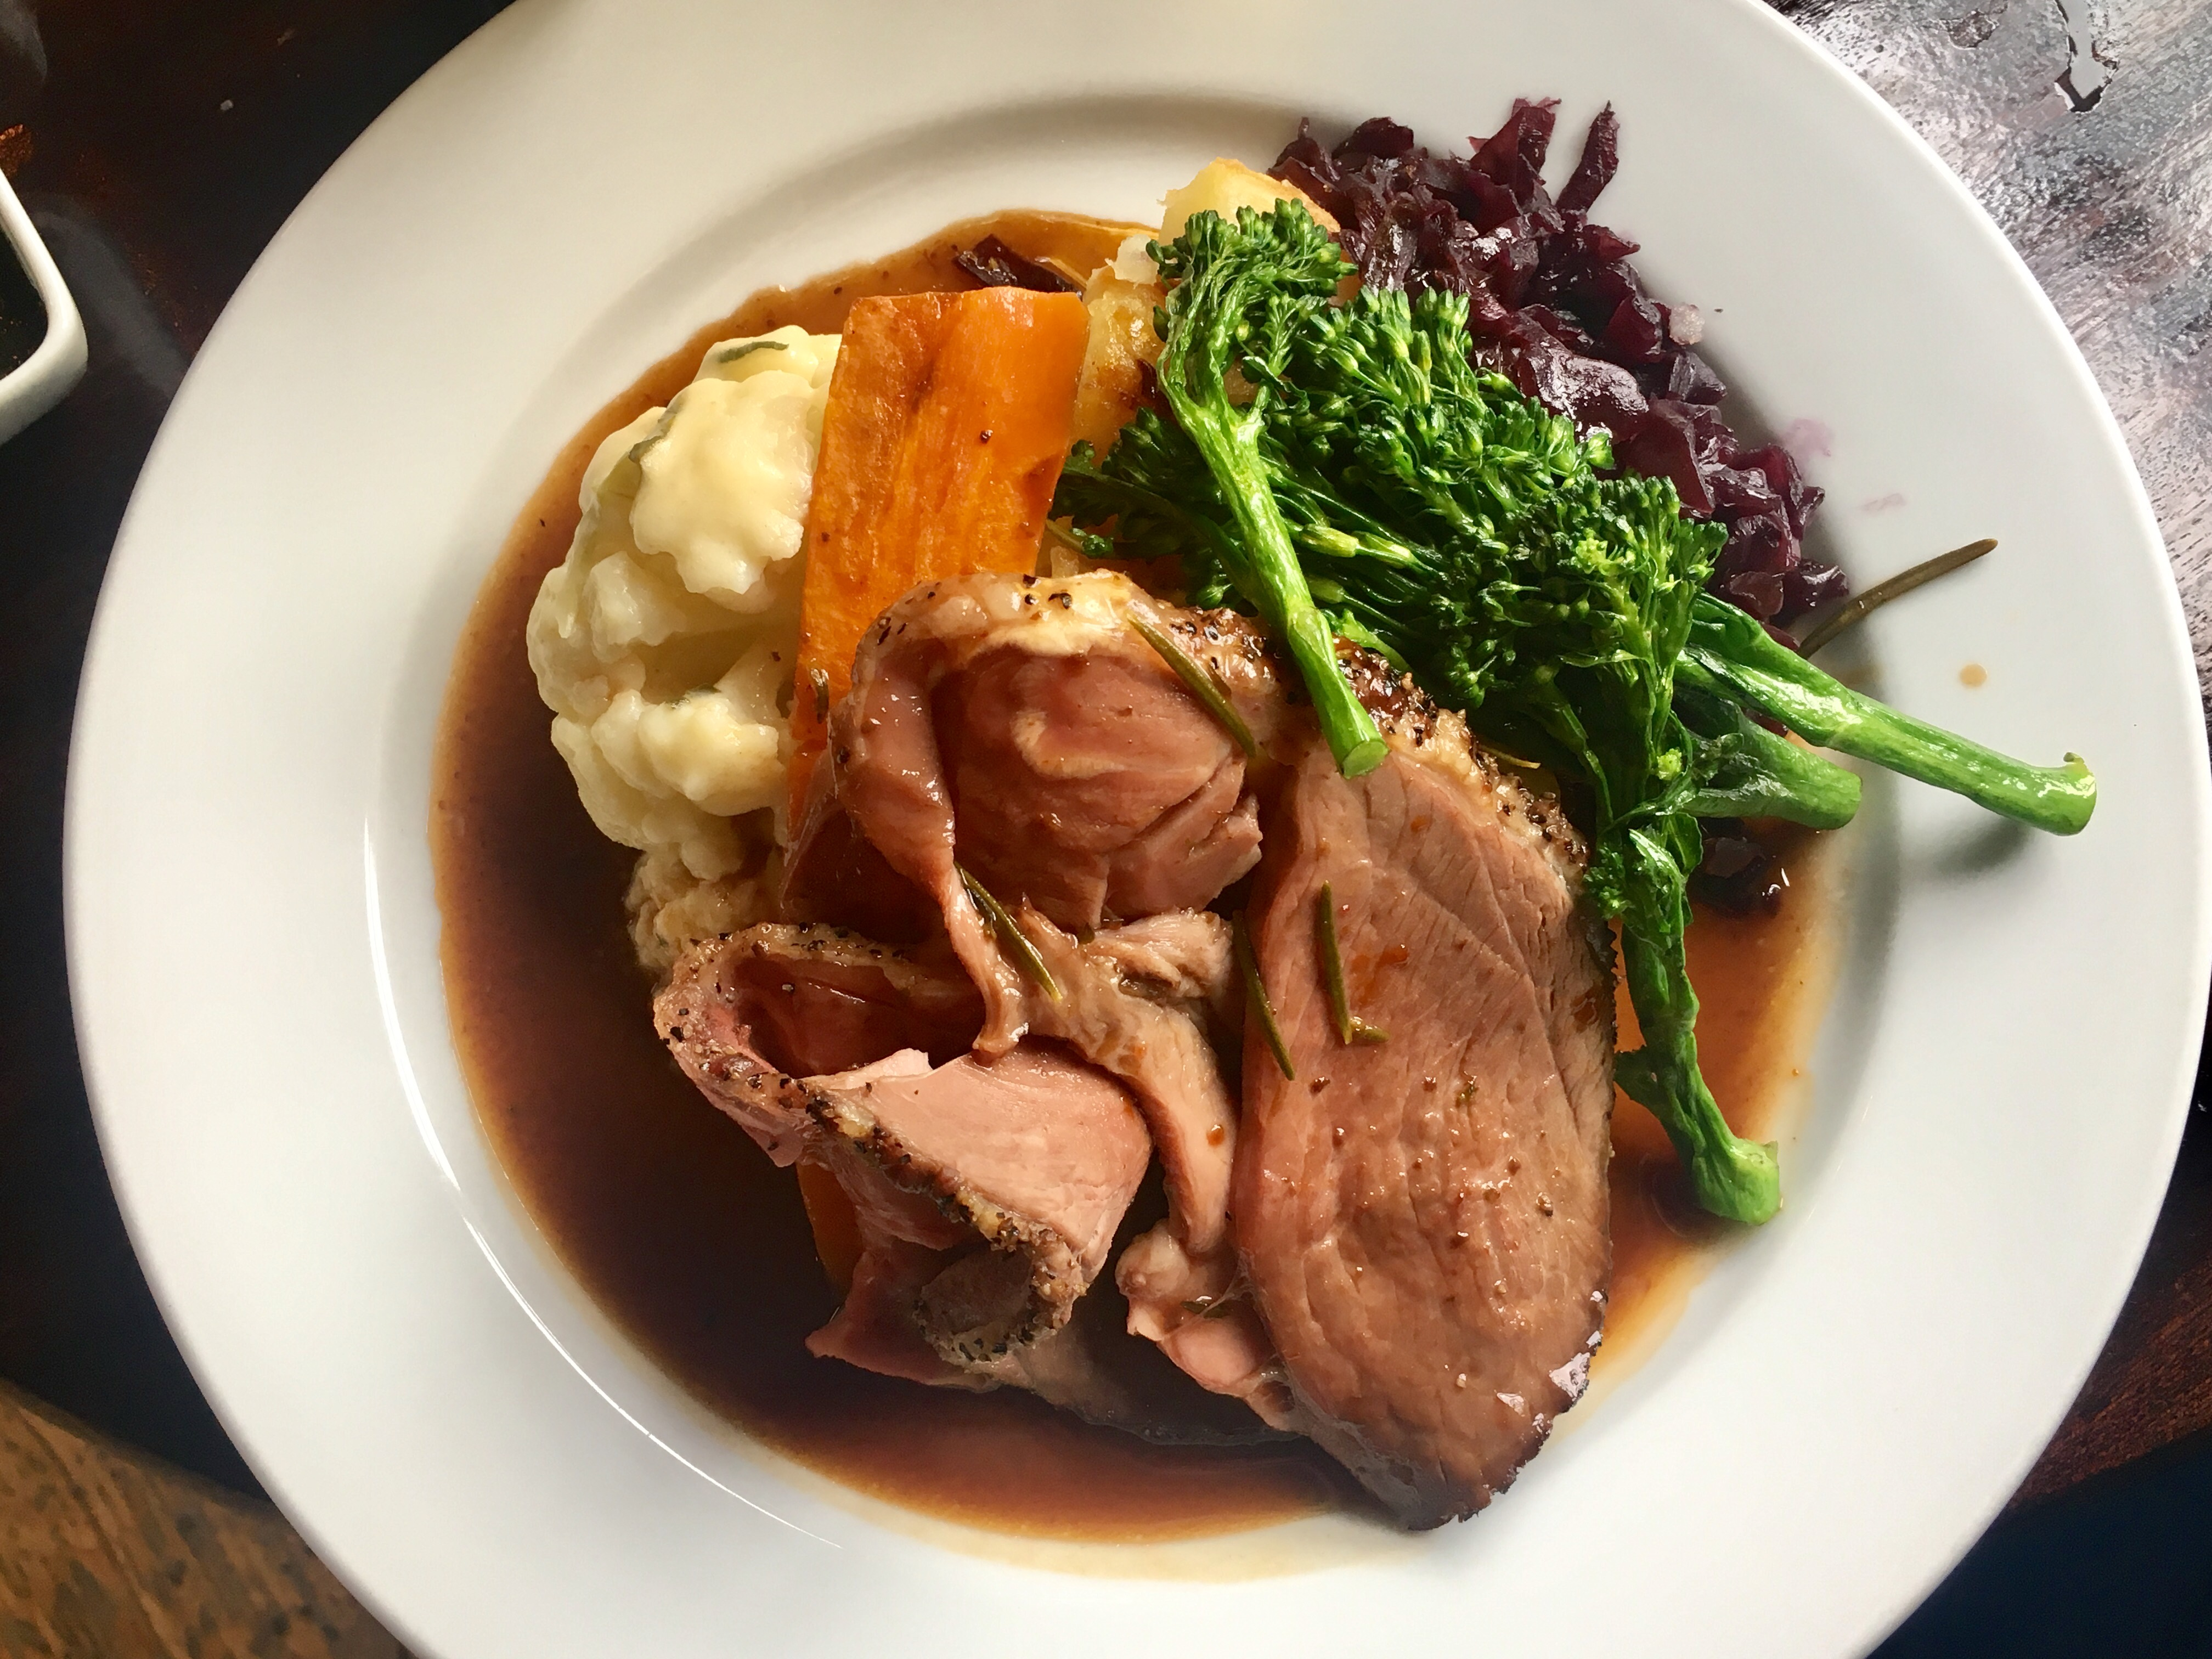 Sunday roast lamb dinner